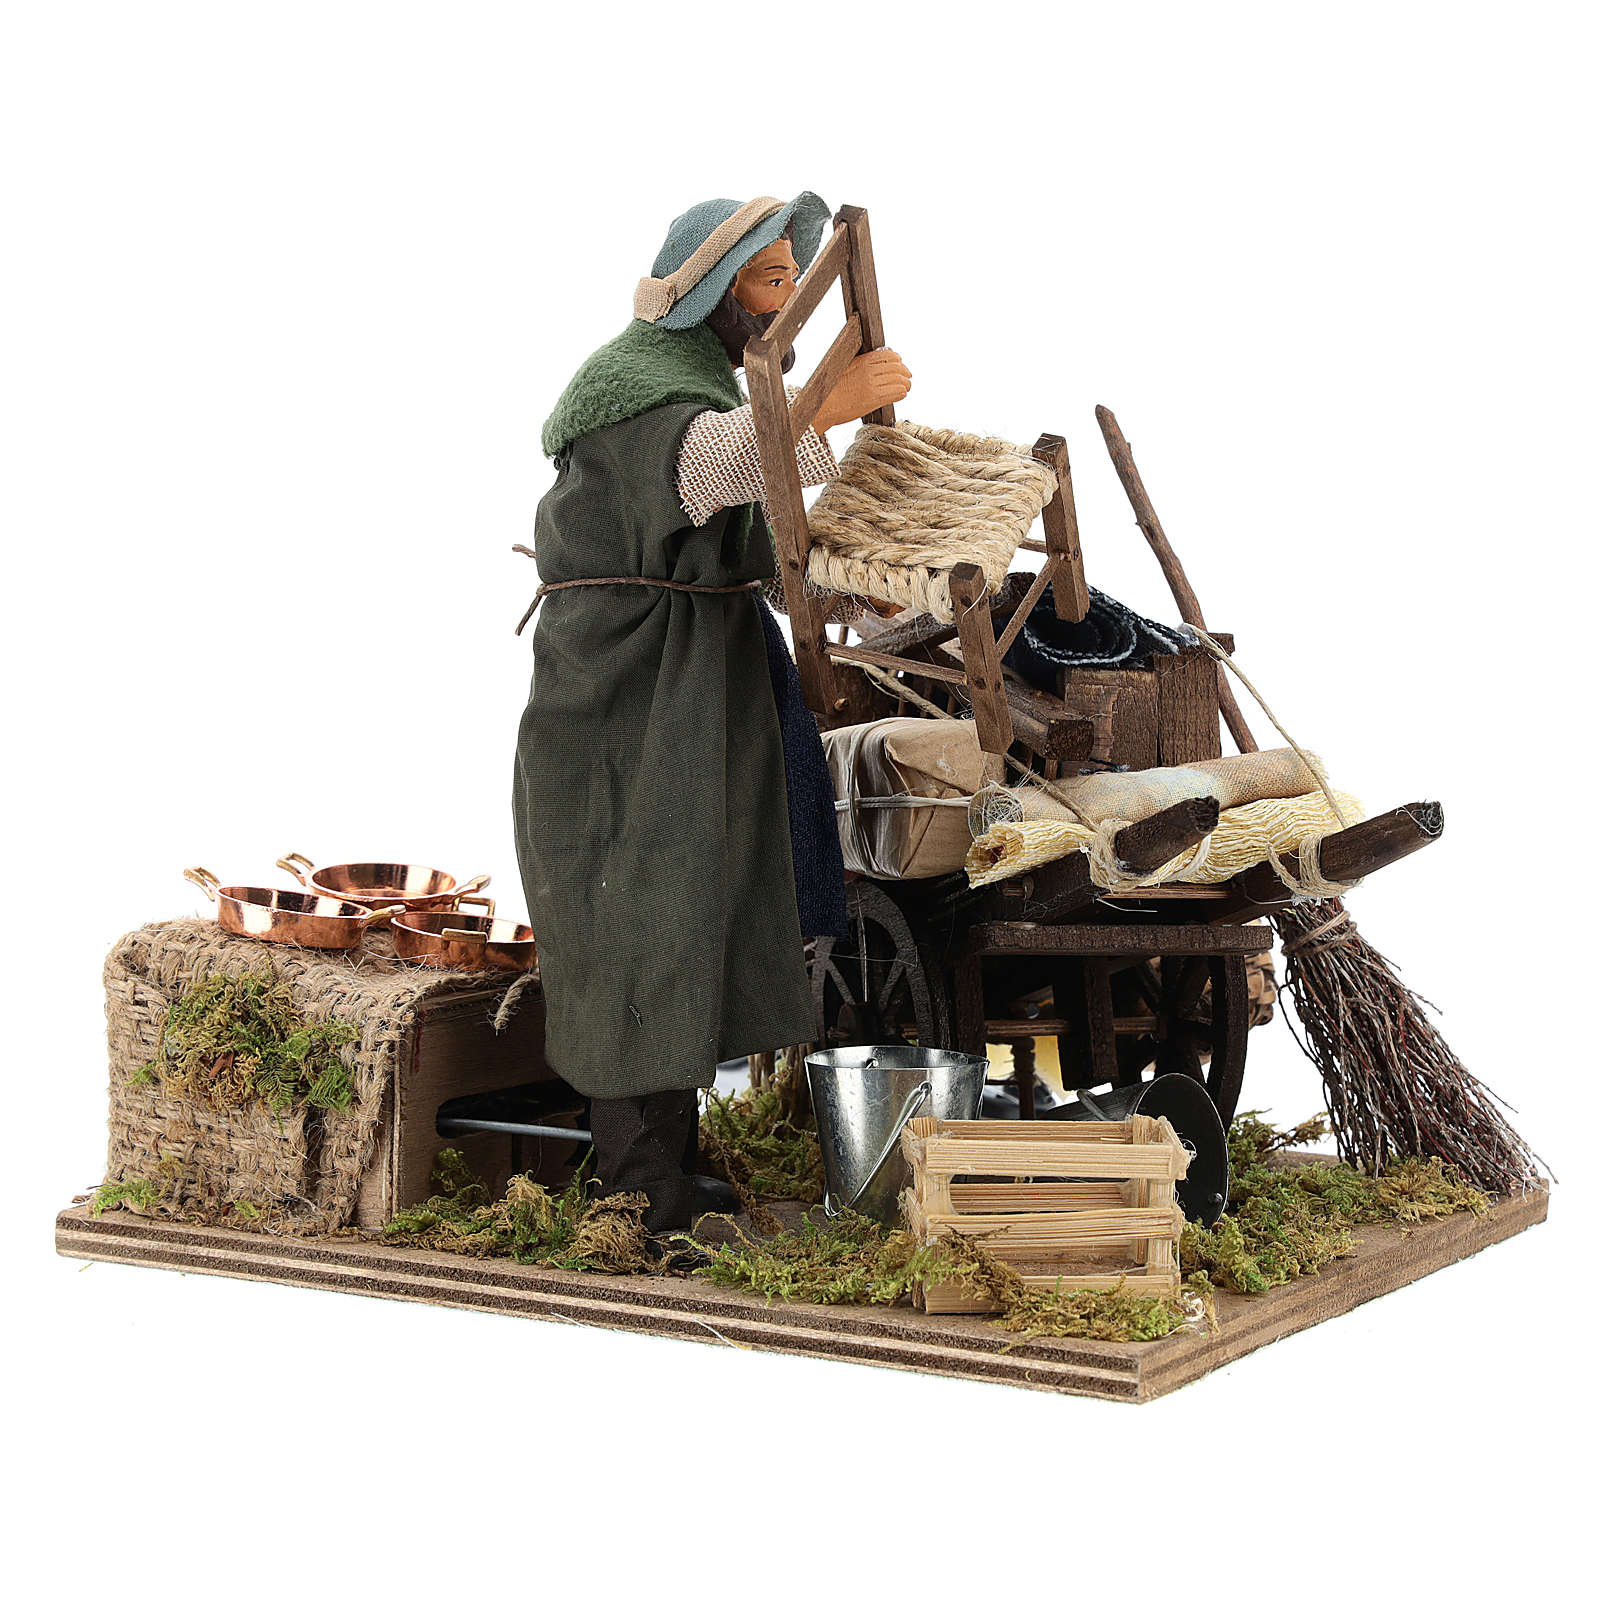 Cart of the evicted for animated Neapolitan Nativity, 14cm 4